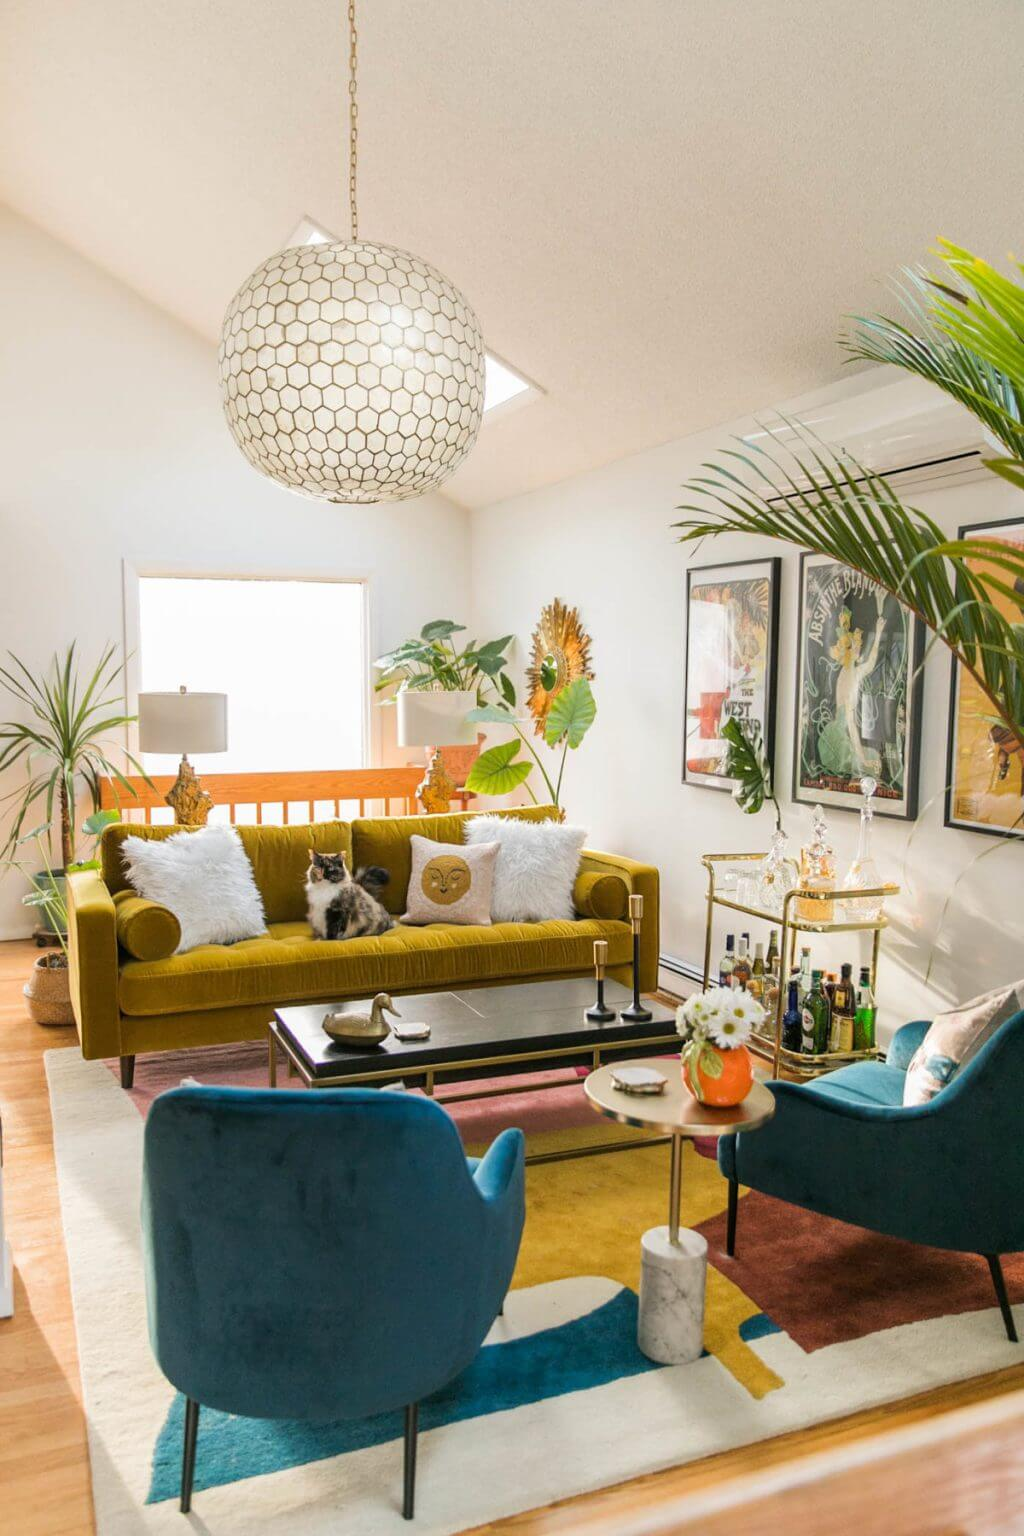 16 Best Colorful Living Room Design Ideas For 2021